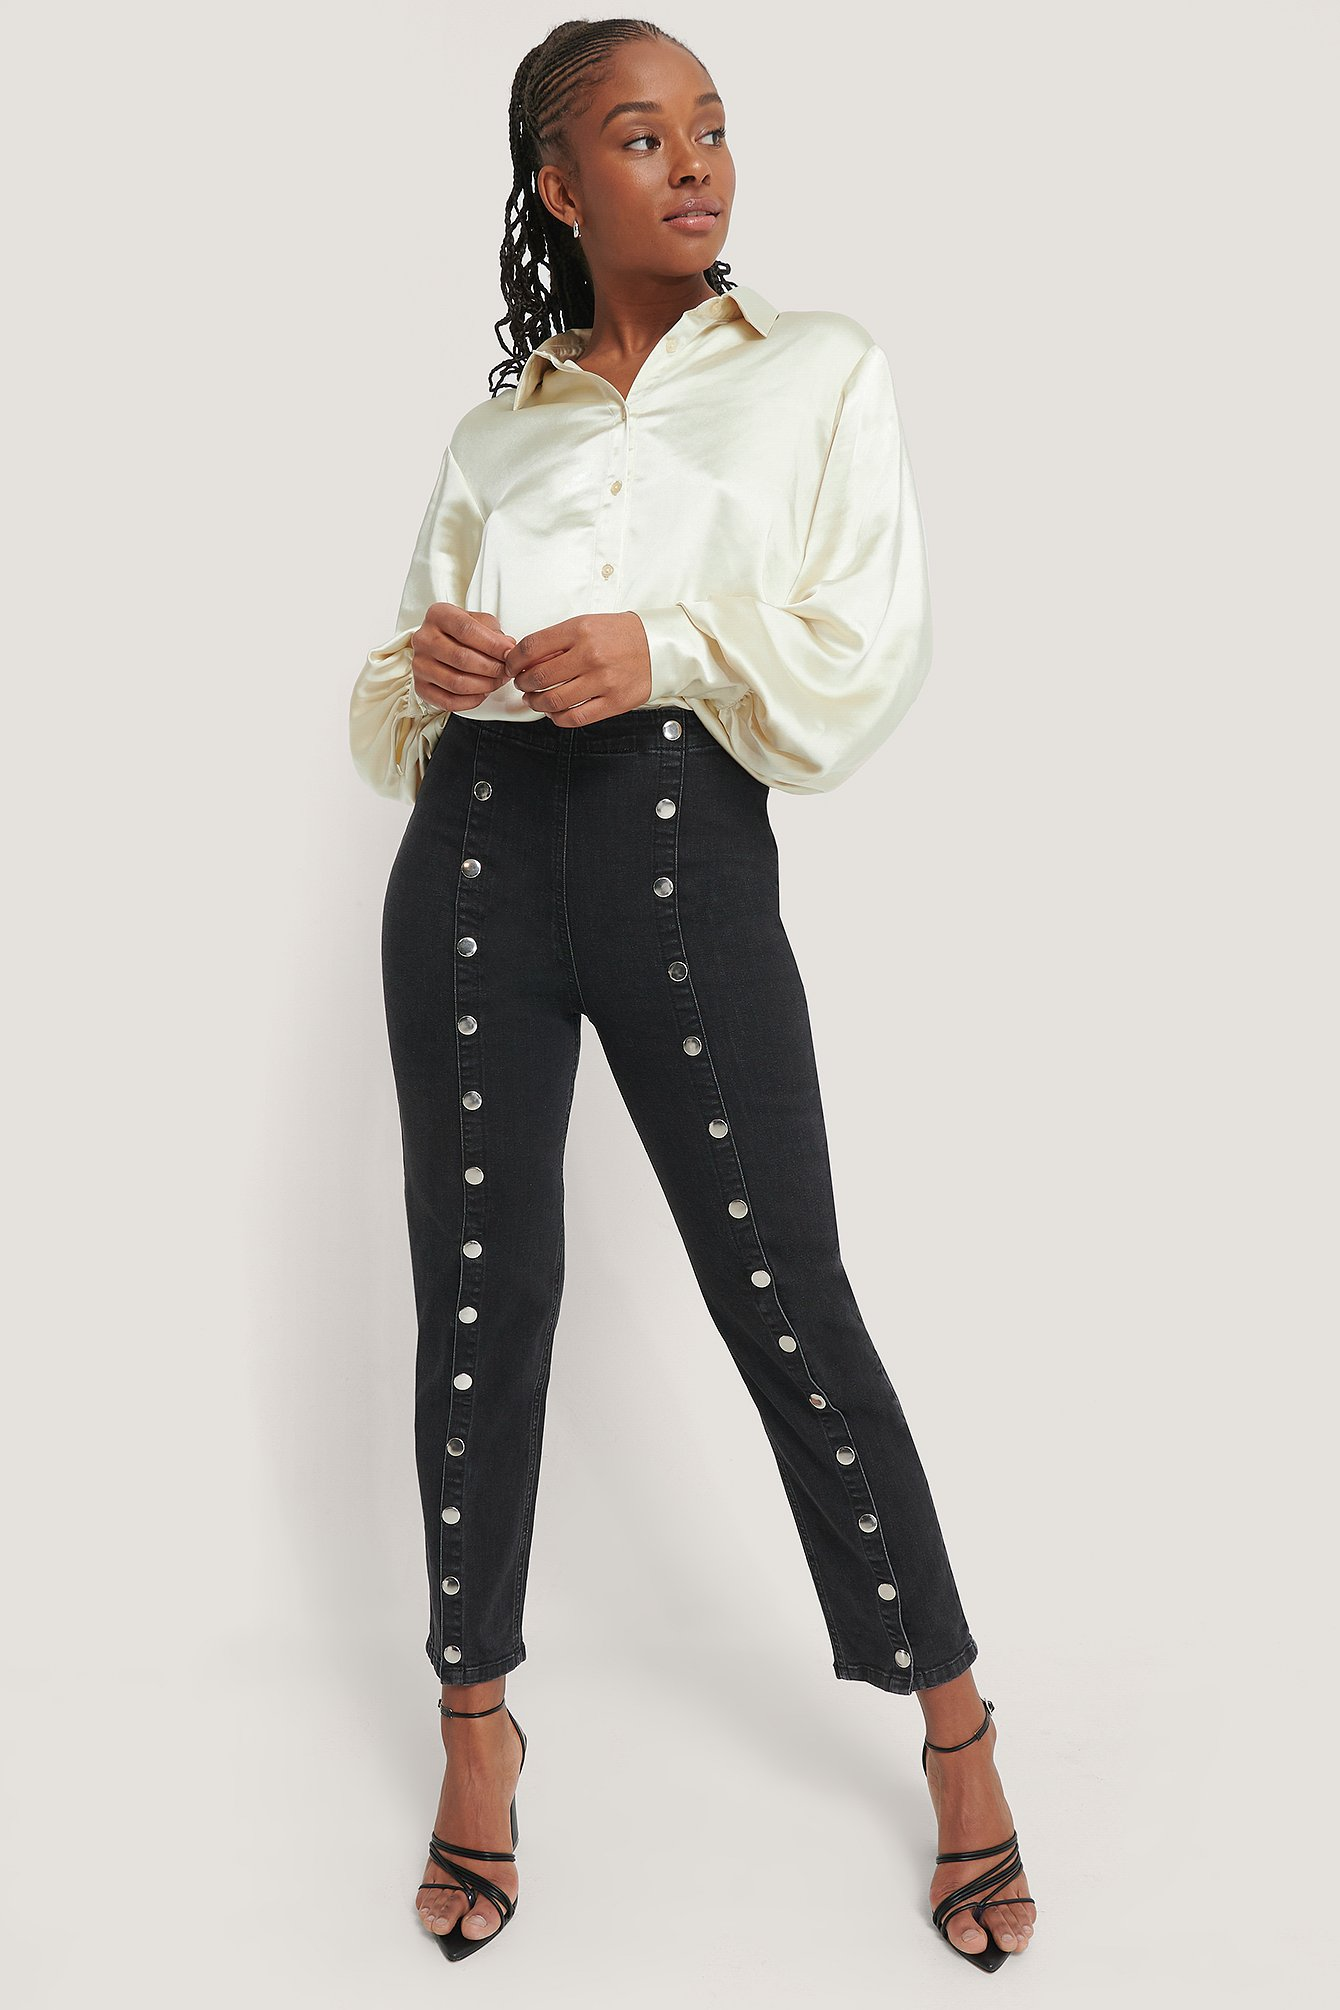 Romy X Na-kd Button Front Jeans Black